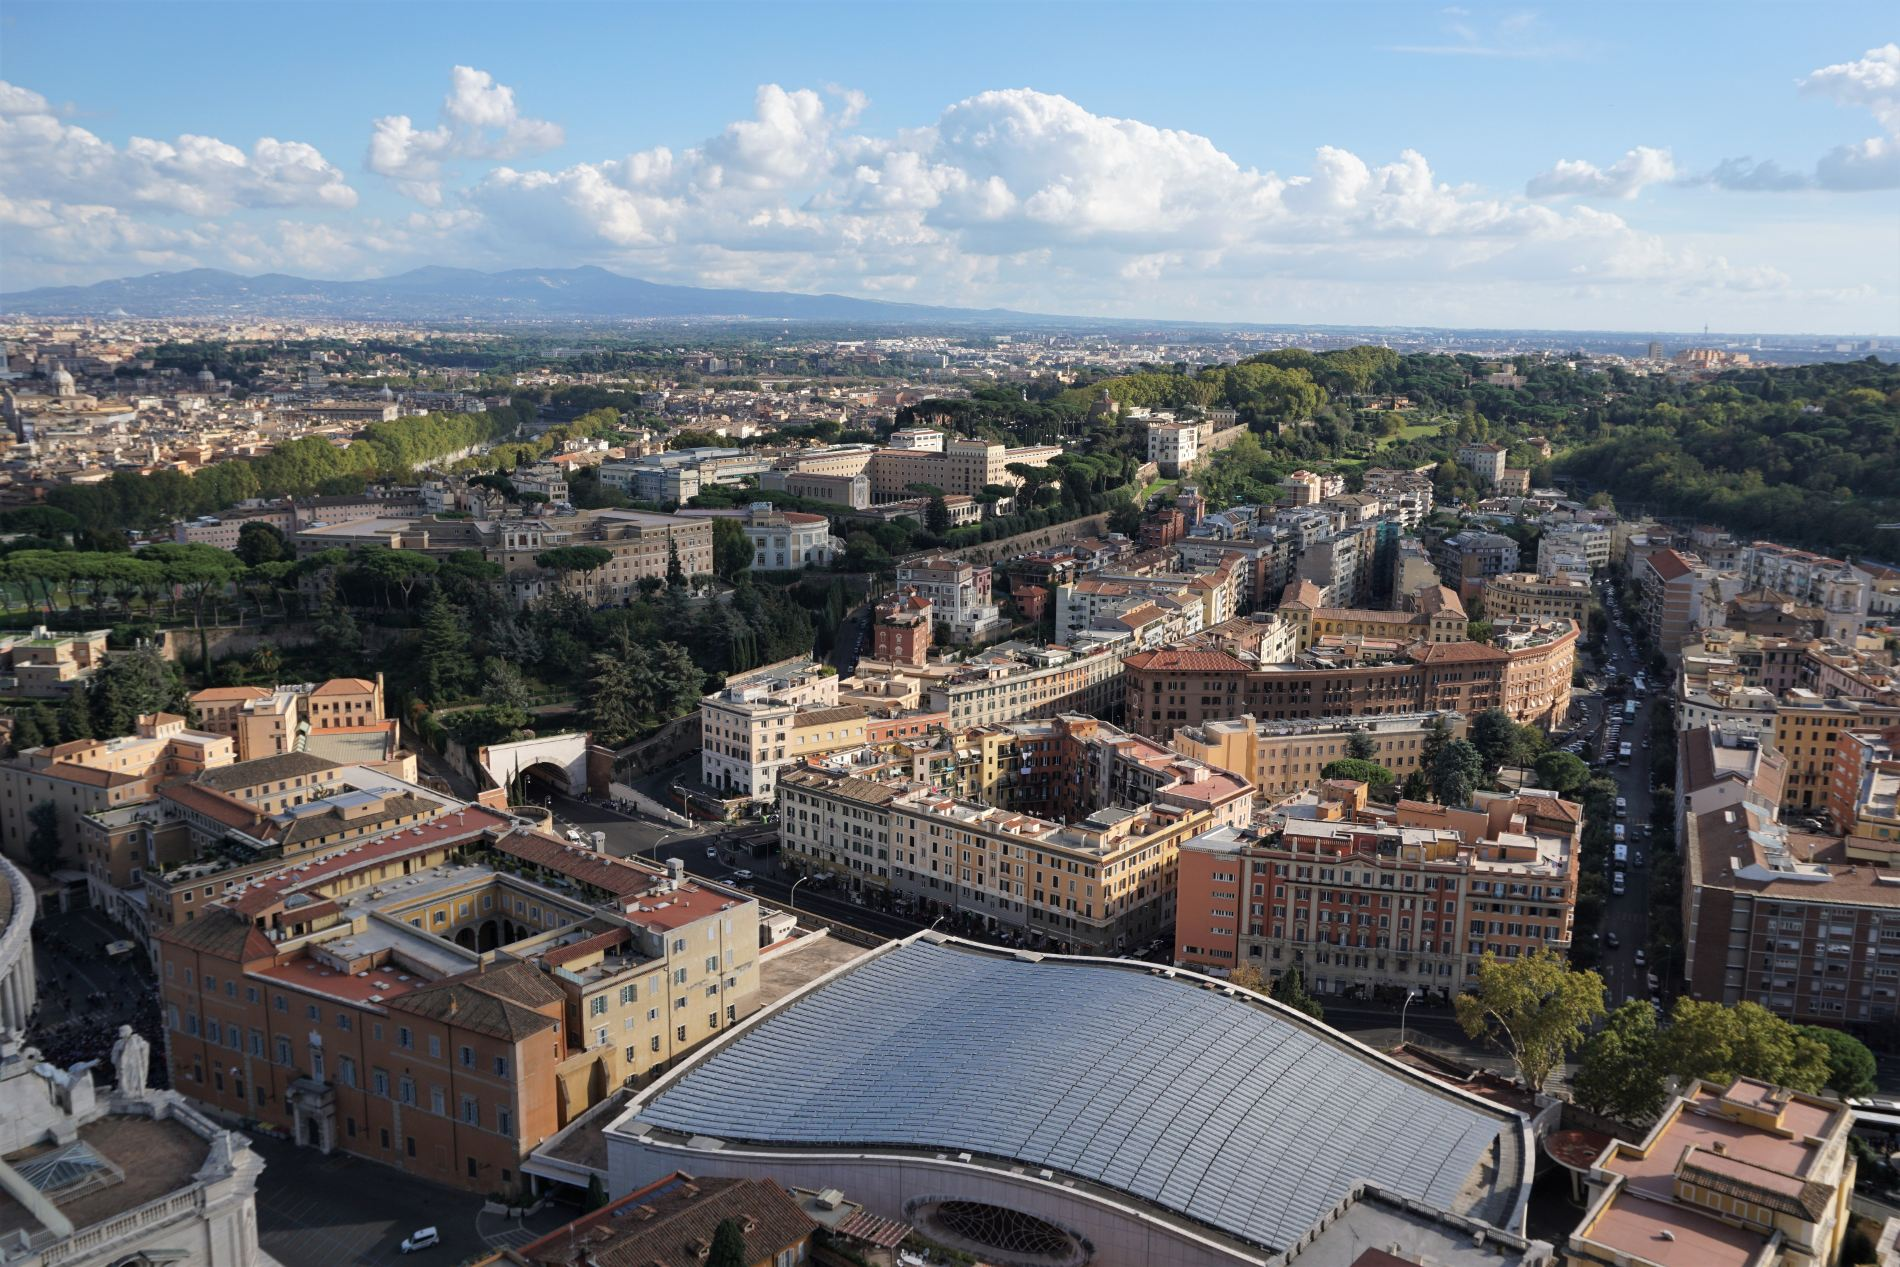 Bird-eye view of the city from Saint Peter's Basilica rooftop. Source: Truevoyagers